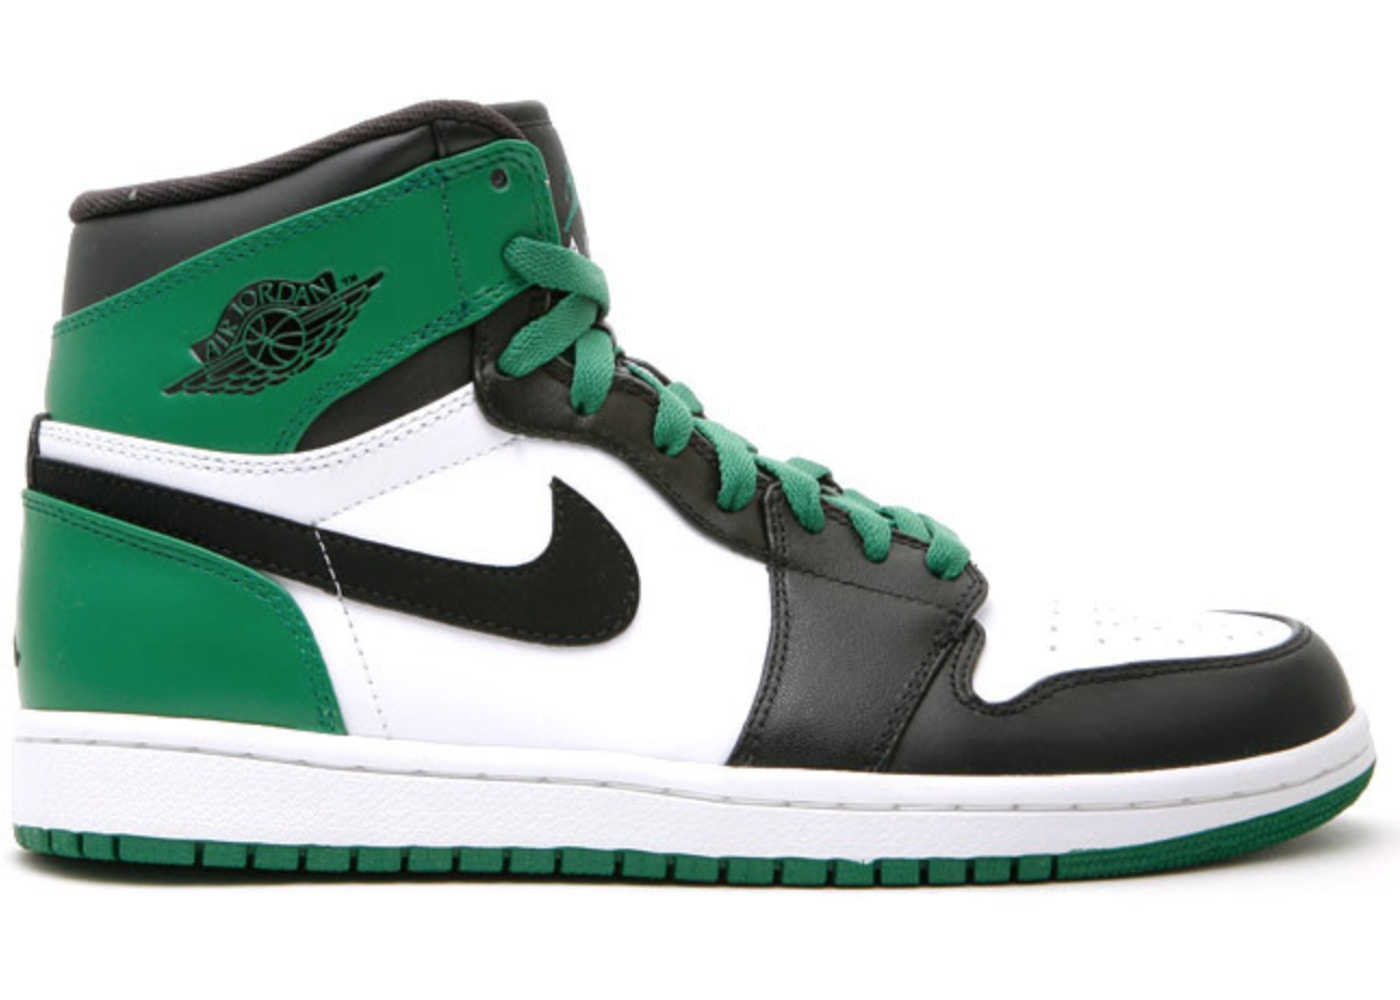 Jordan 1 Retro Defining Moments Celtics (DMP) - 332550-101 4a84e5d003